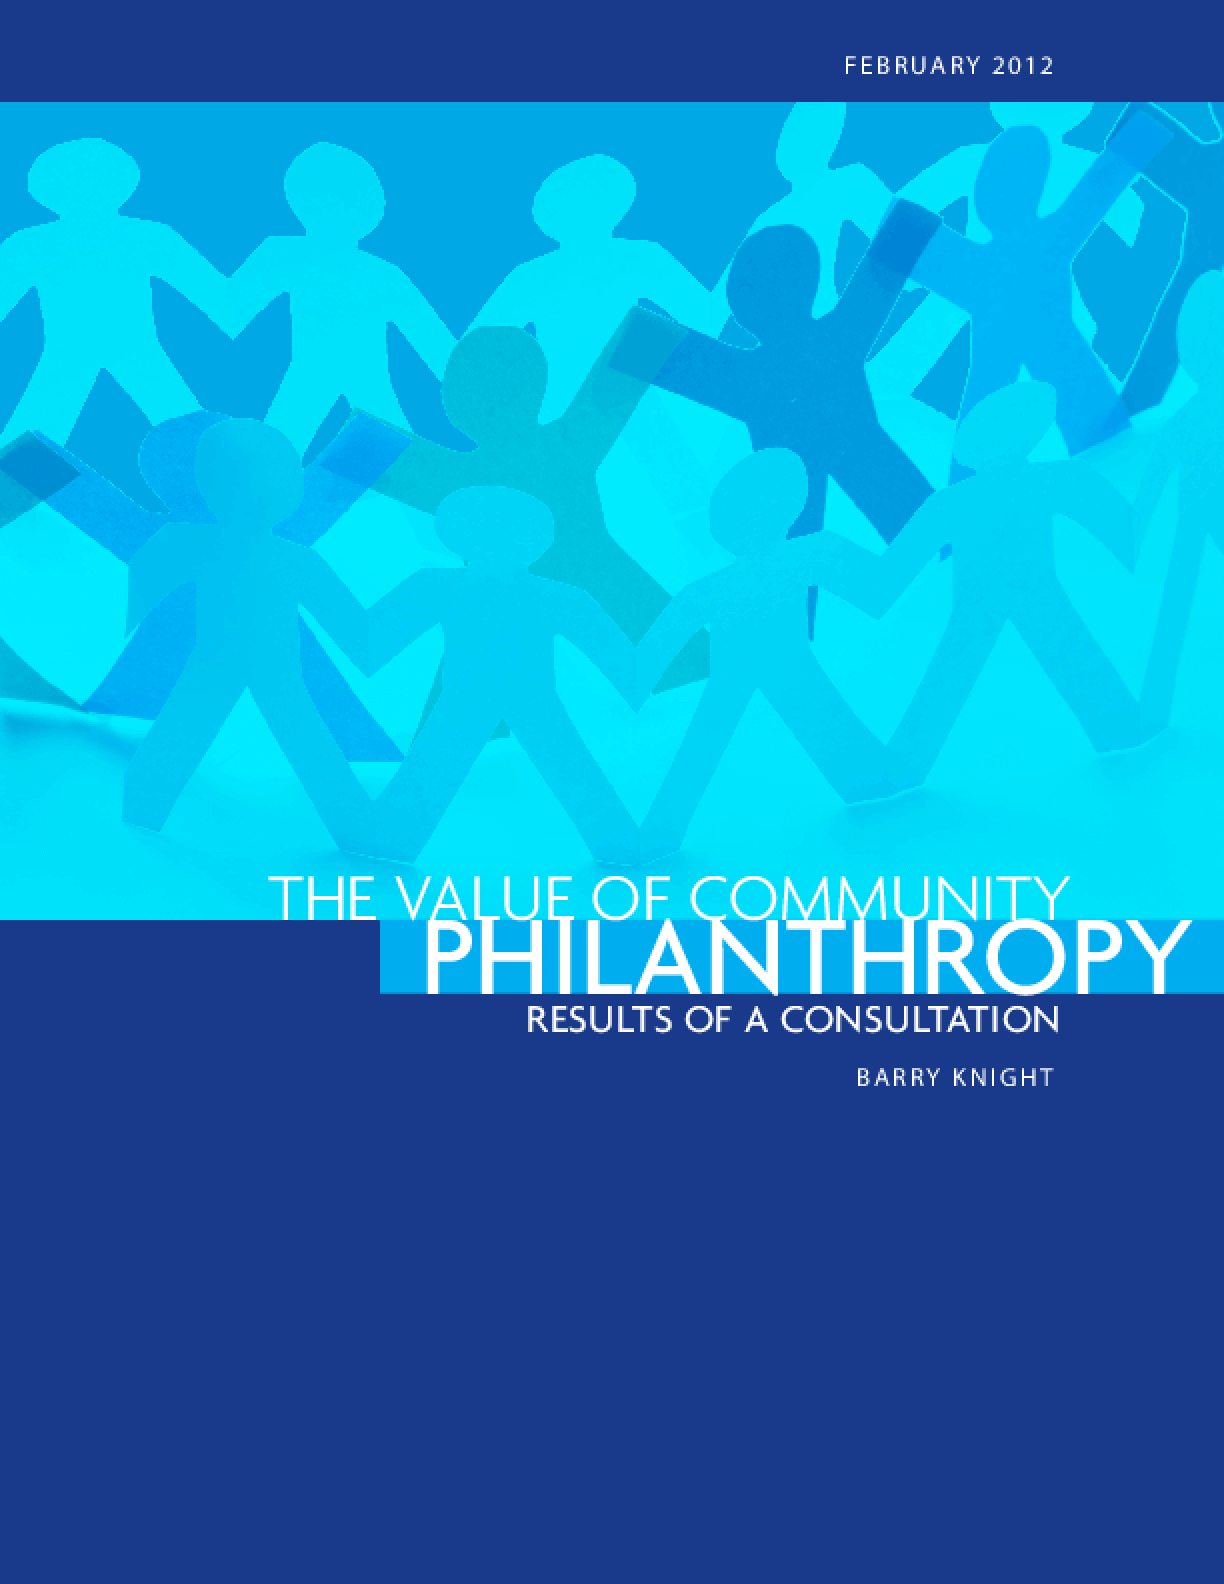 The Value of Community Philanthropy: Results of a Consultation